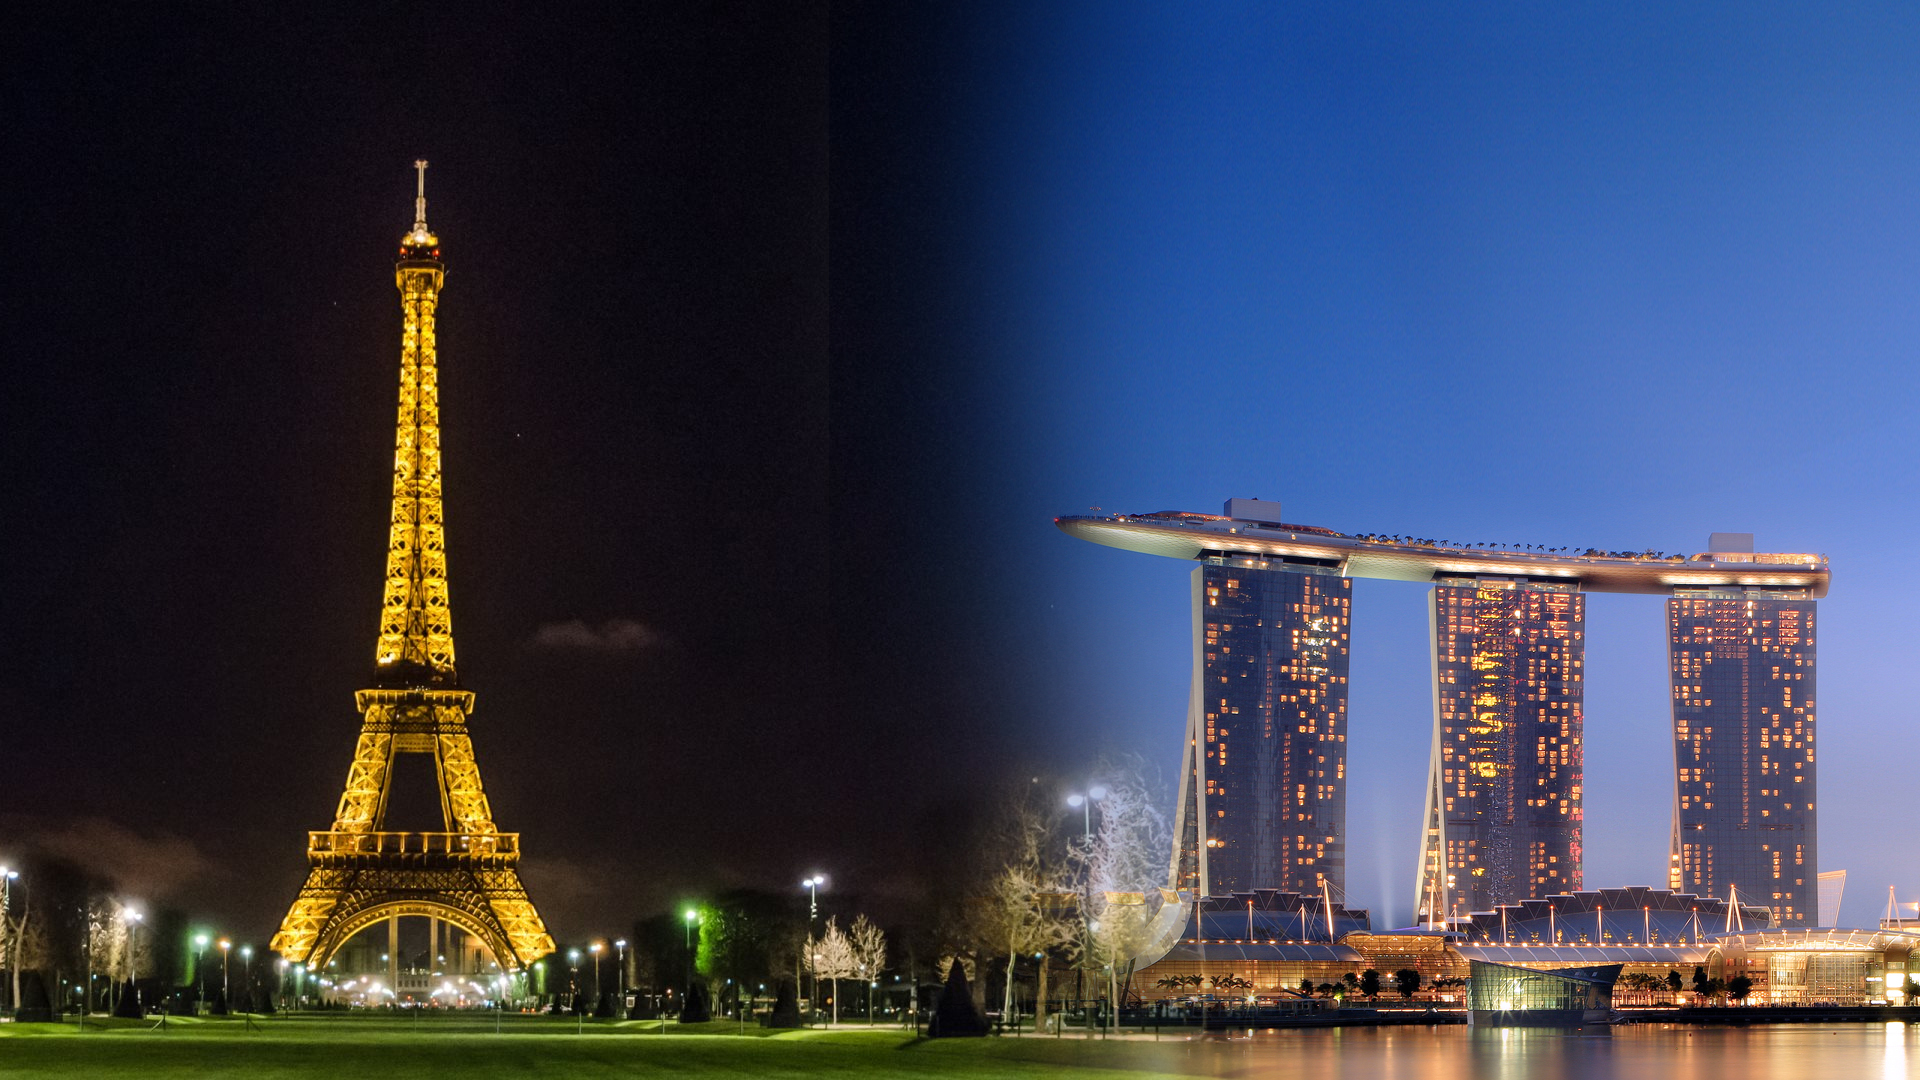 From Paris to Singapore: 7 Similar Hidden Gems You Need to Discover